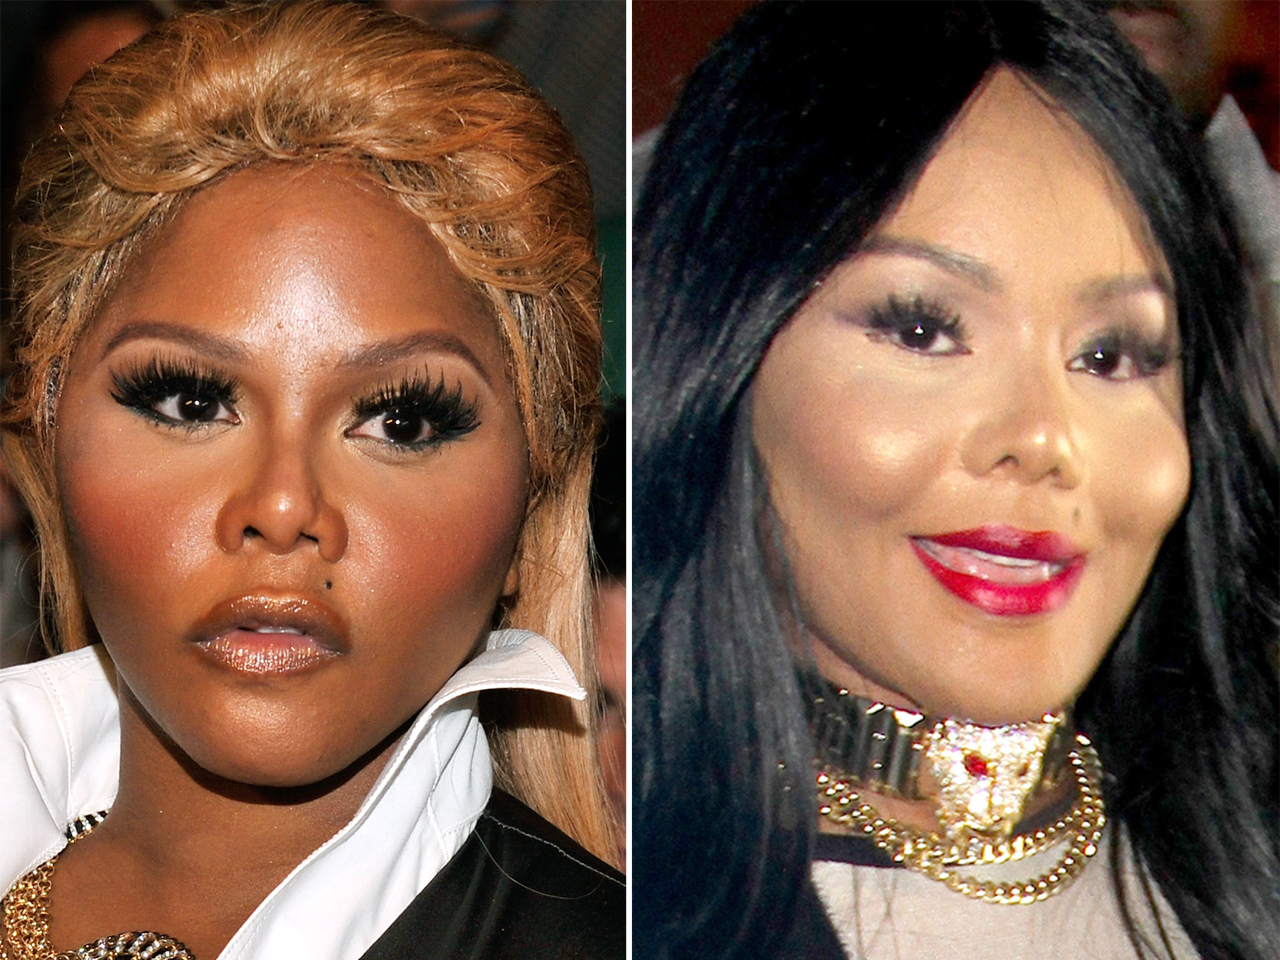 Lil Kim Is That You Rapper S Looks Have Transformed